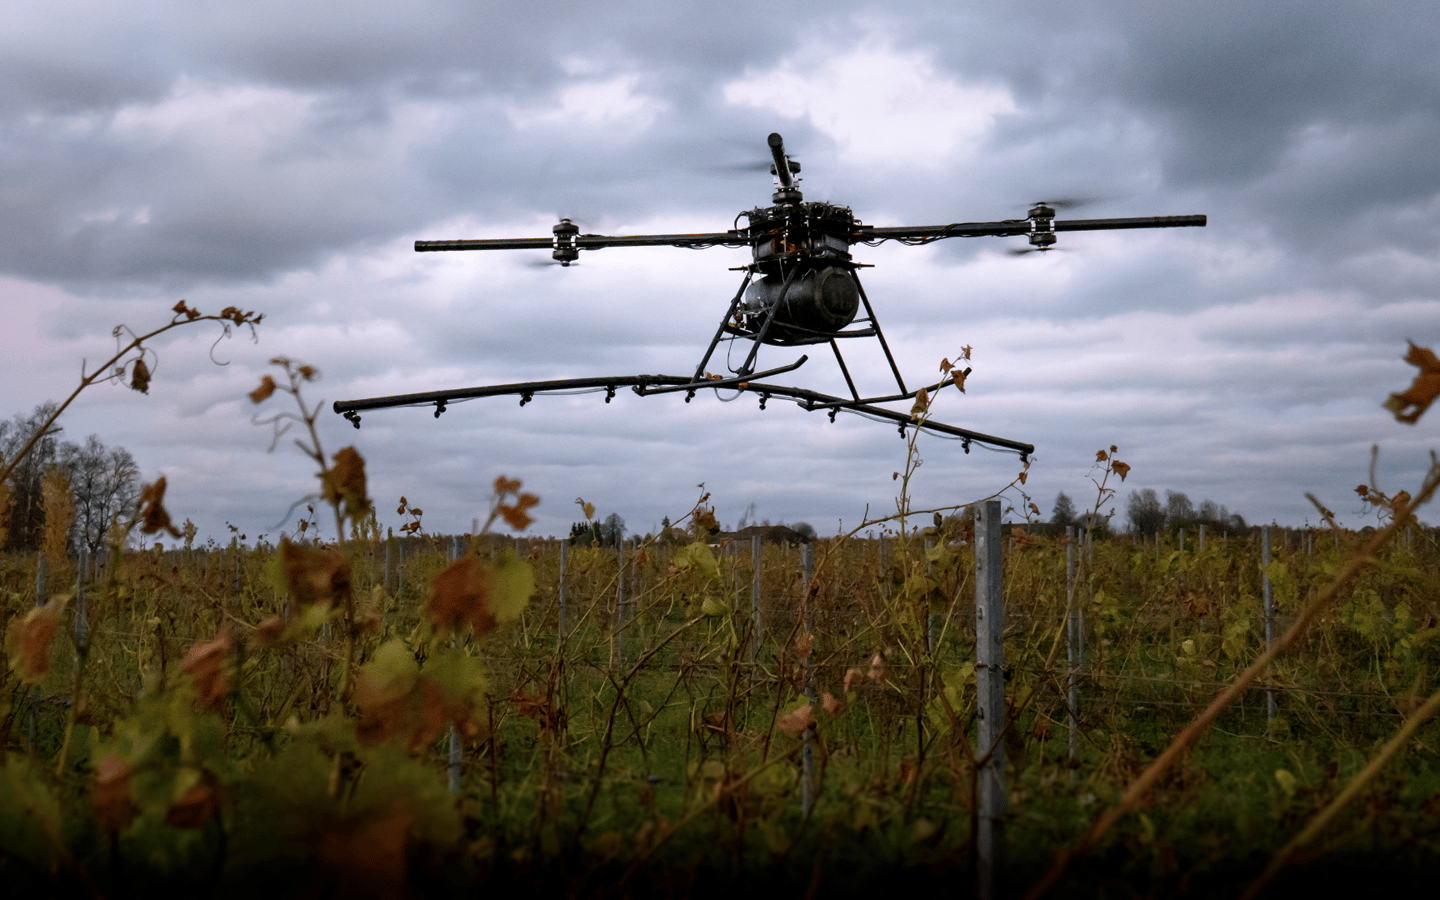 The Agro drone has a top forward speed of 4 meters (13 ft) per second